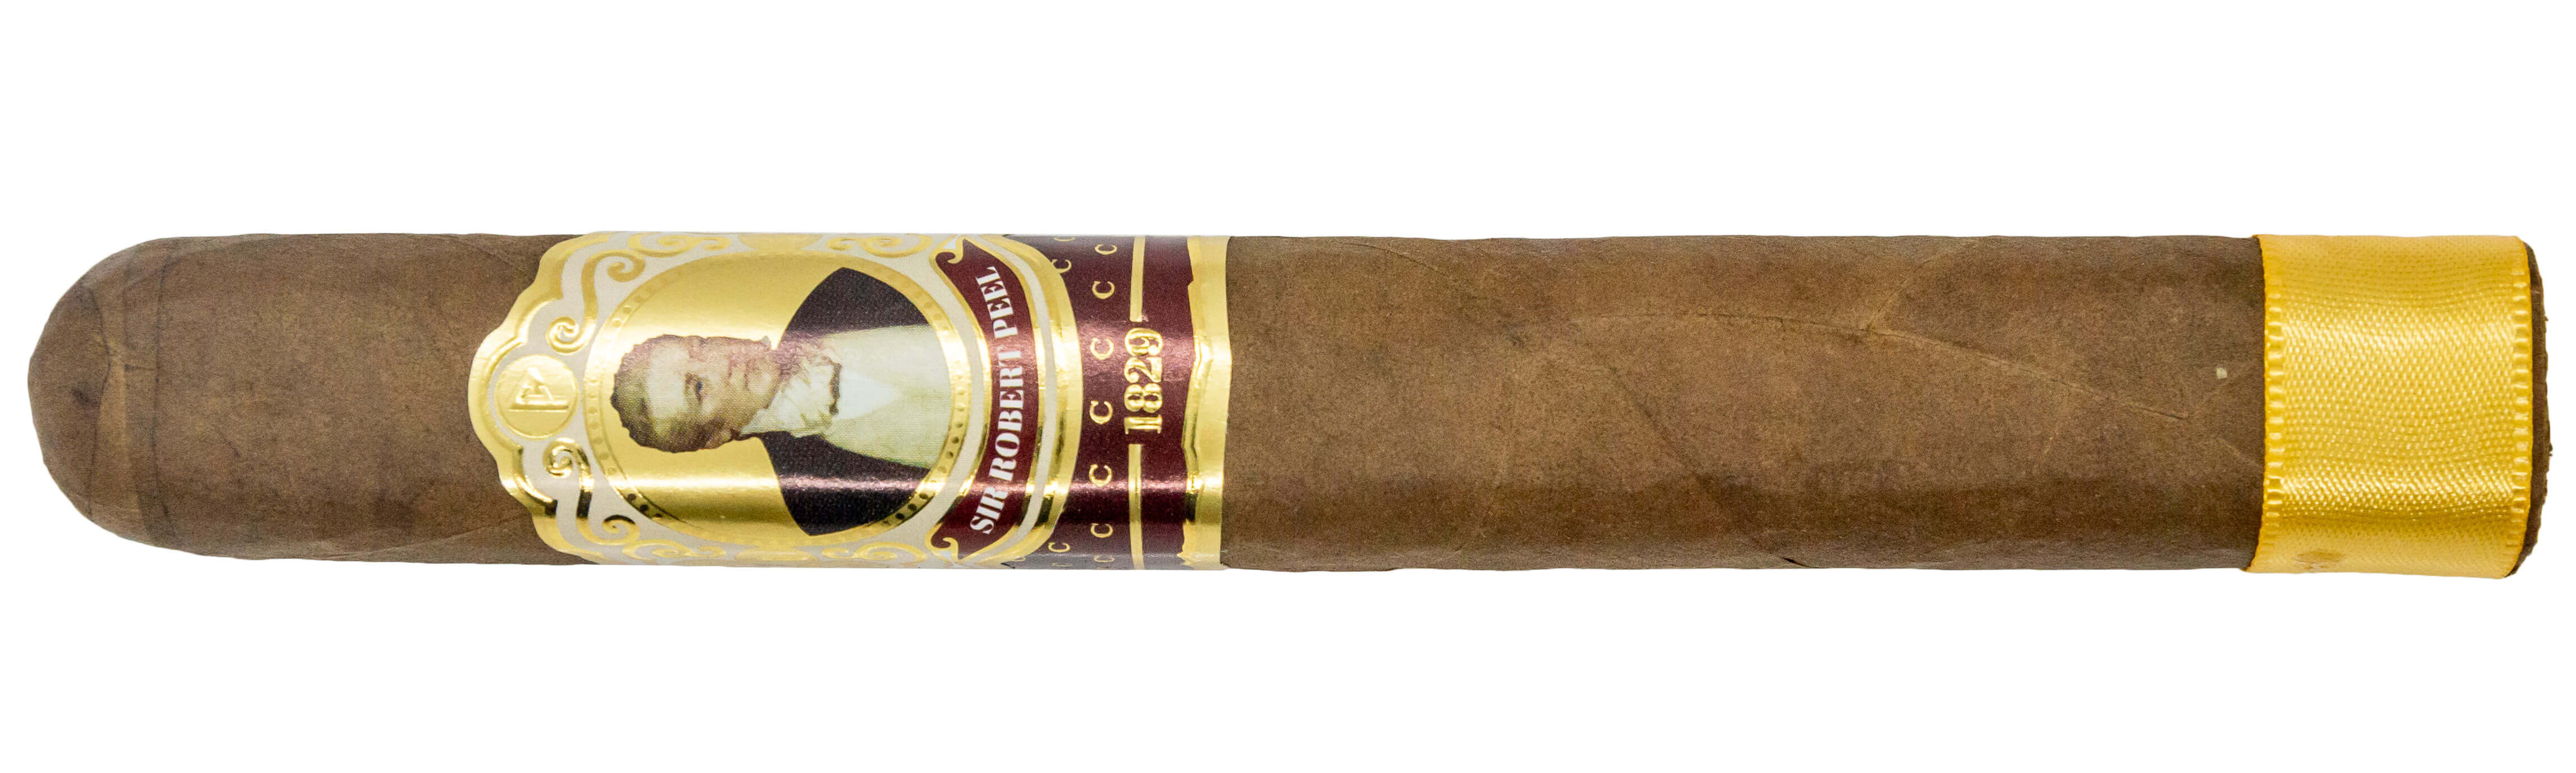 Blind Cigar Review: Cubariqueño | Protocol Sir Robert Peel Natural